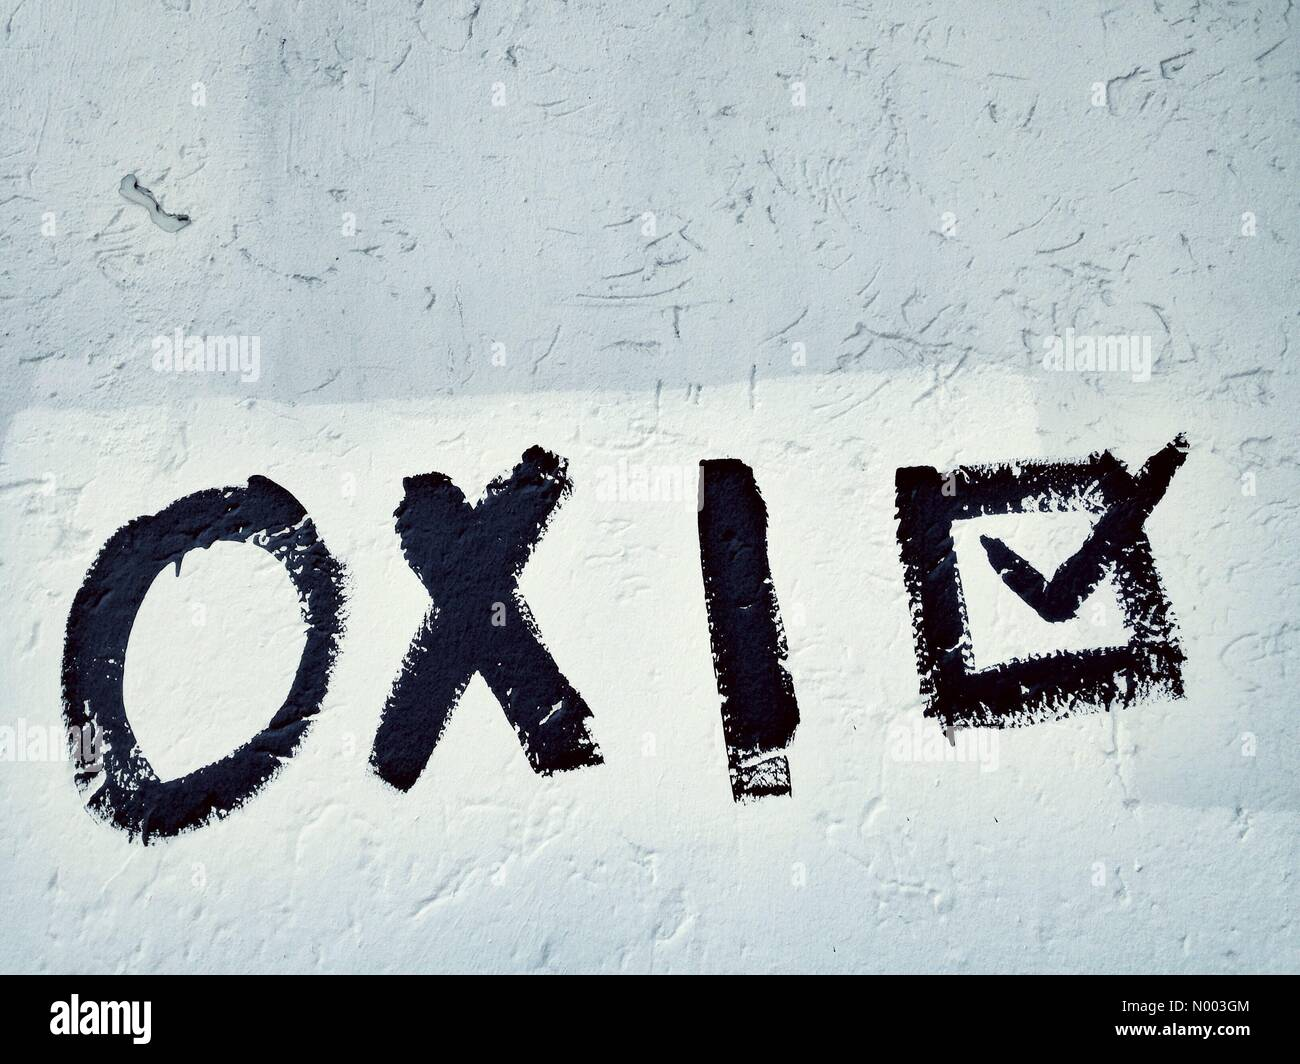 Oxi (No), graffiti on a wall in the Berlin district of Kreuzberg calling for a 'No' in the bailout referendum - Stock Image